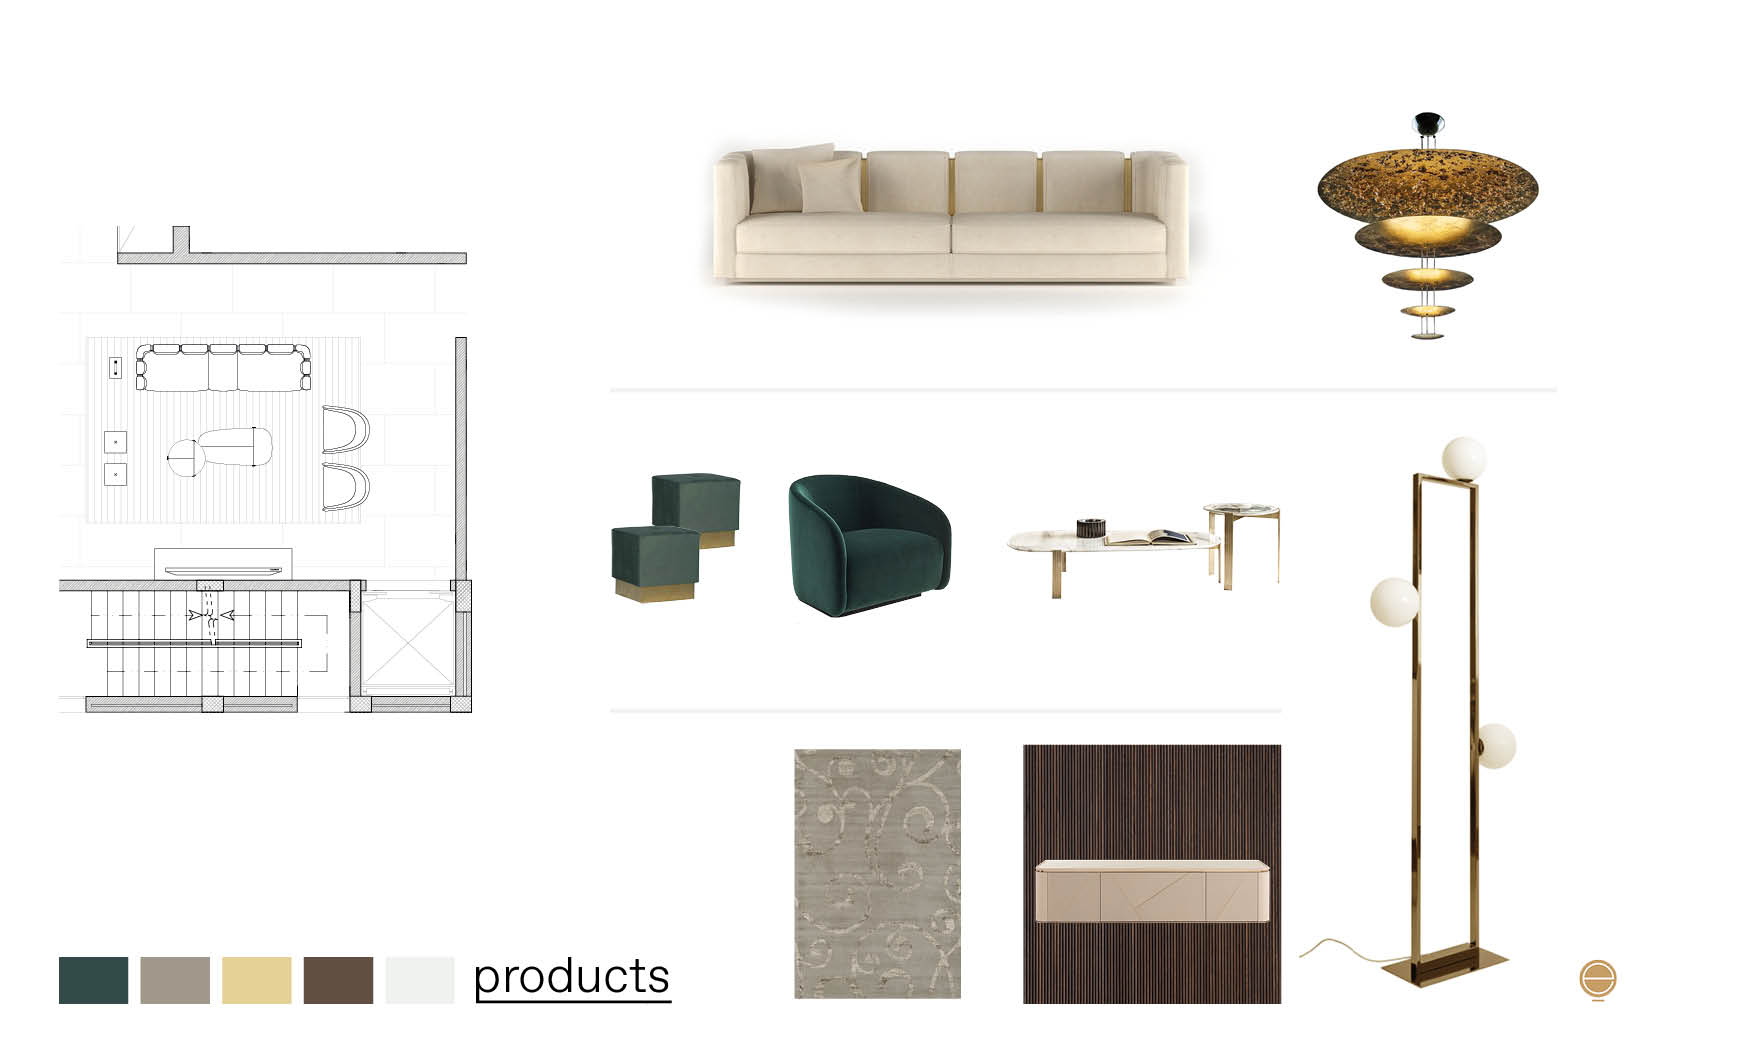 elegant luxury living room furniture products composition made by Esperiri